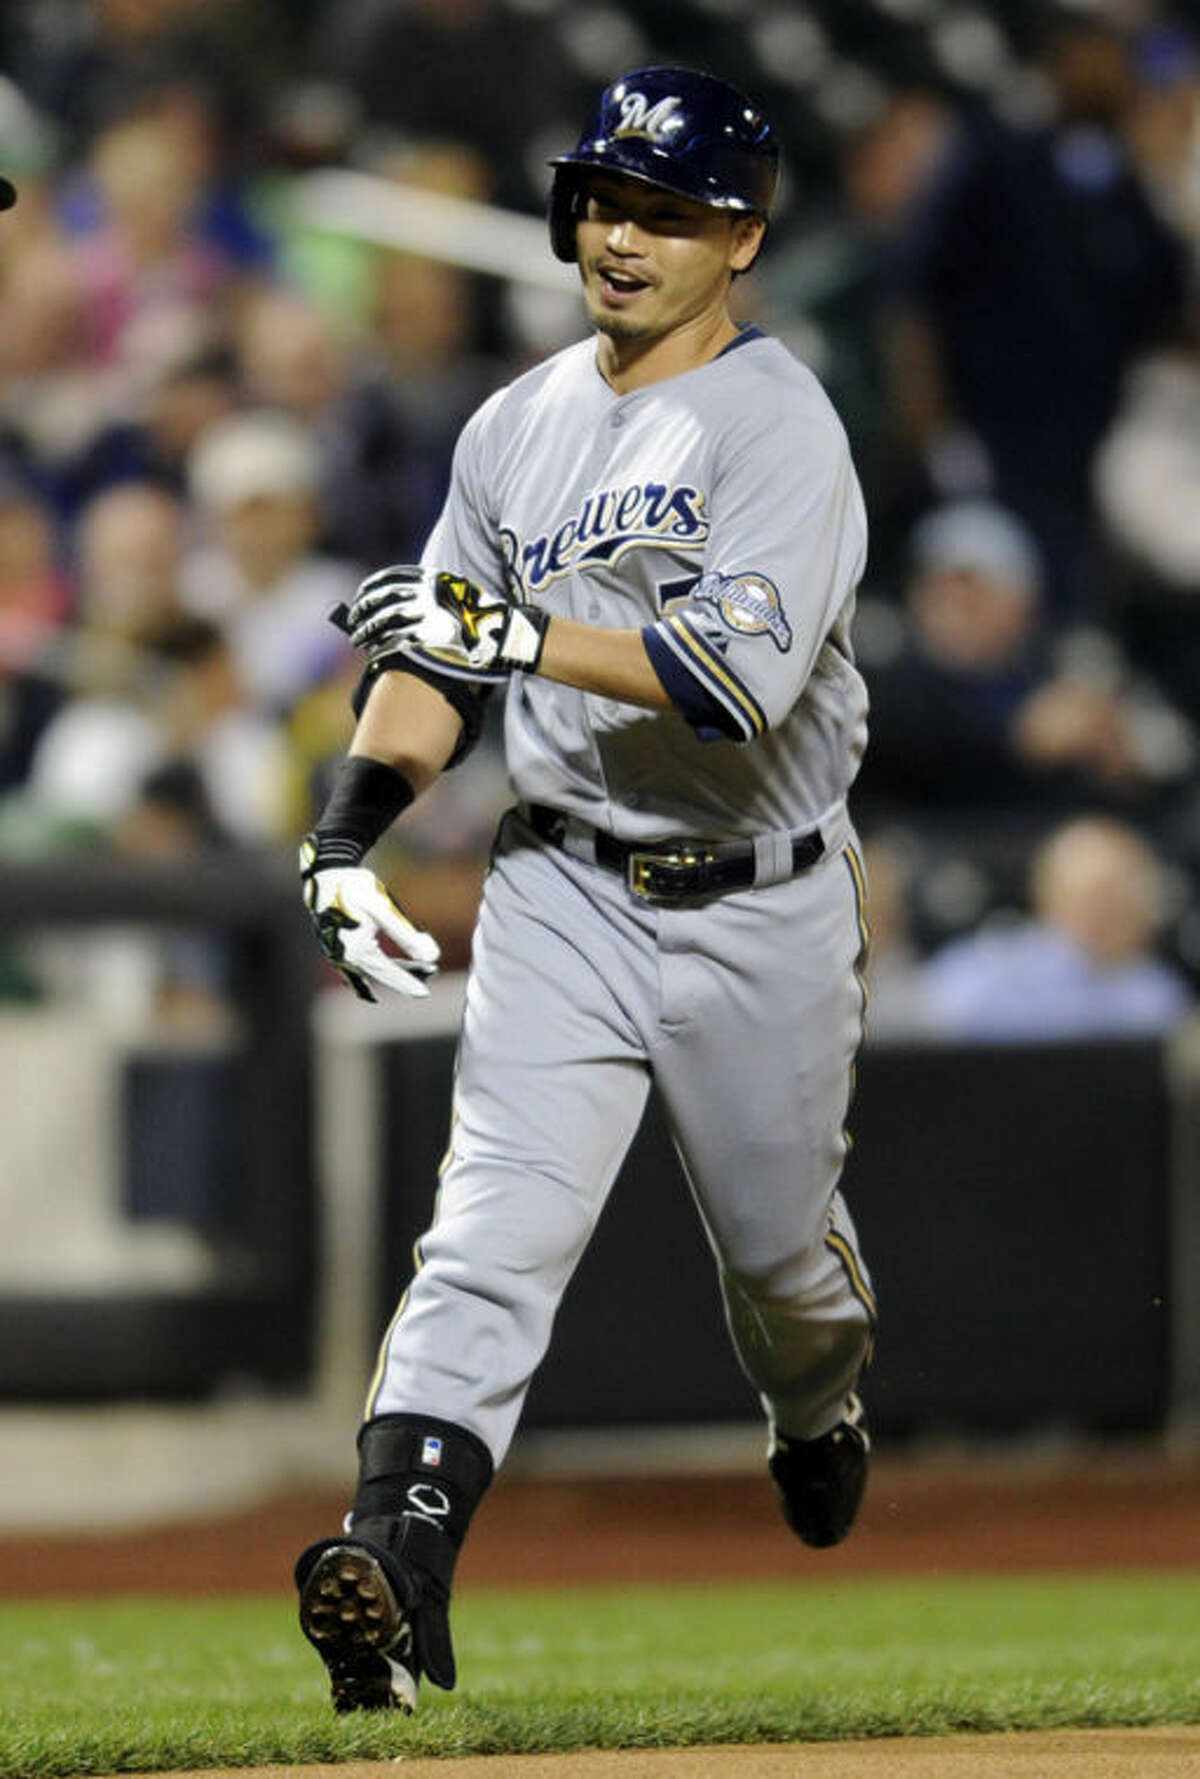 Milwaukee Brewers' Norichika Aoki reacts as he rounds the bases with a home run during the first inning of a baseball game against the New York Mets Friday, Sept. 27, 2013, in New York. (AP Photo/Bill Kostroun)